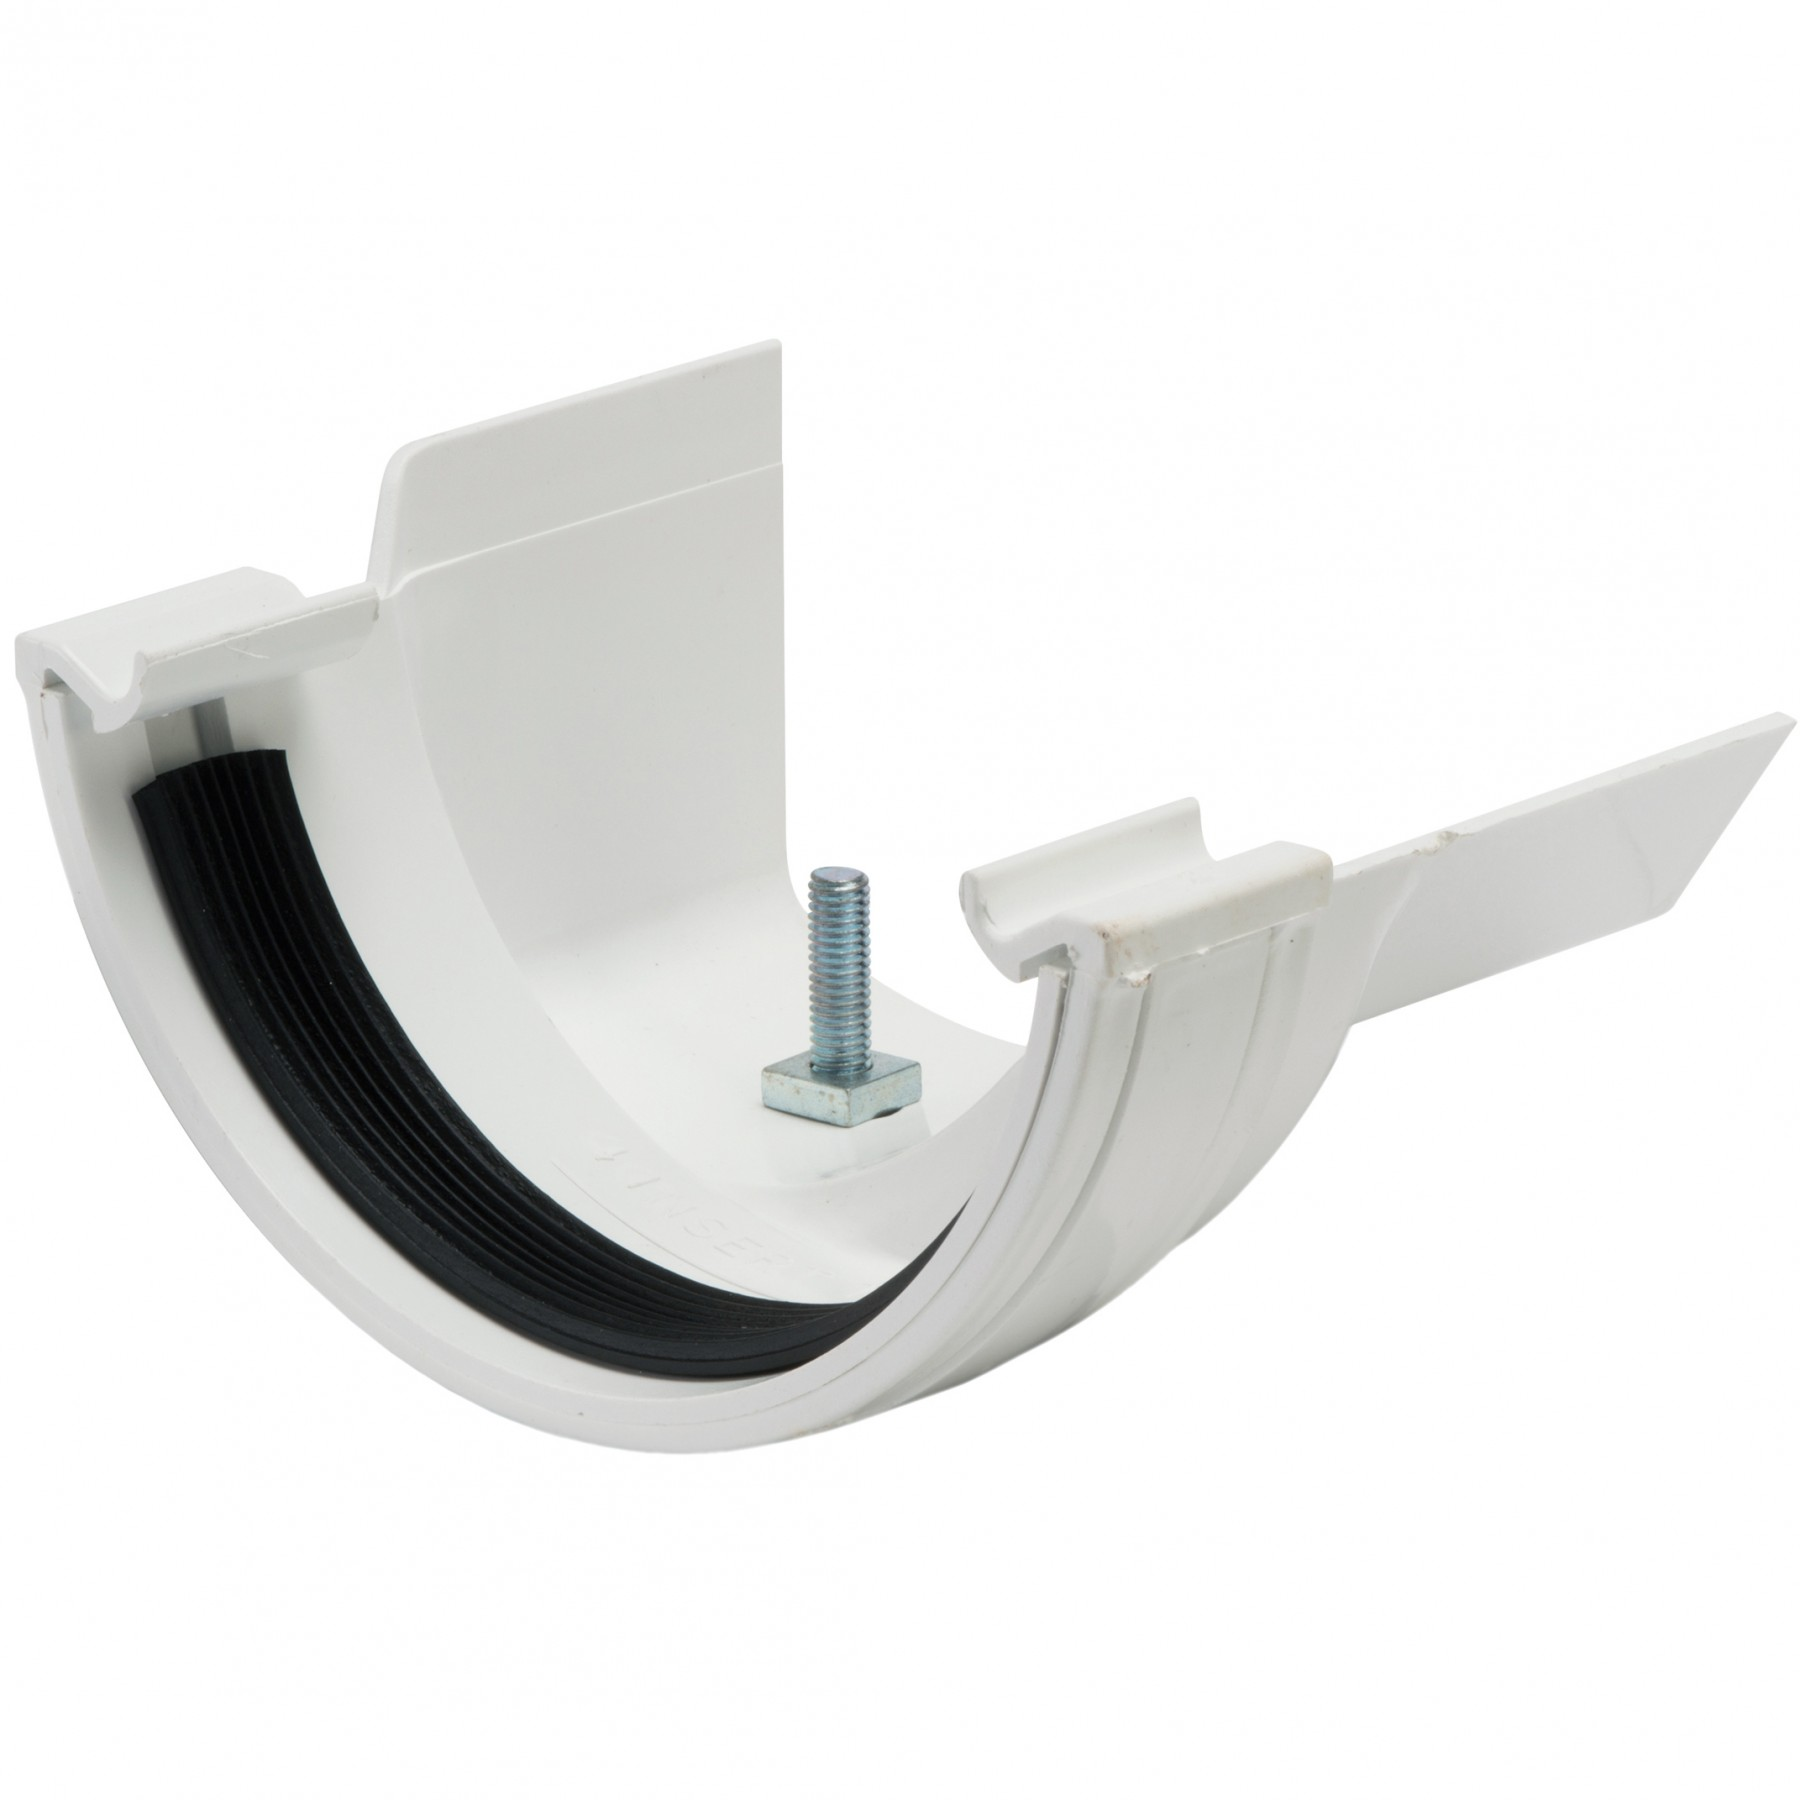 Rr118w Polypipe 112mm Half Round To Metal 130mm Ogee